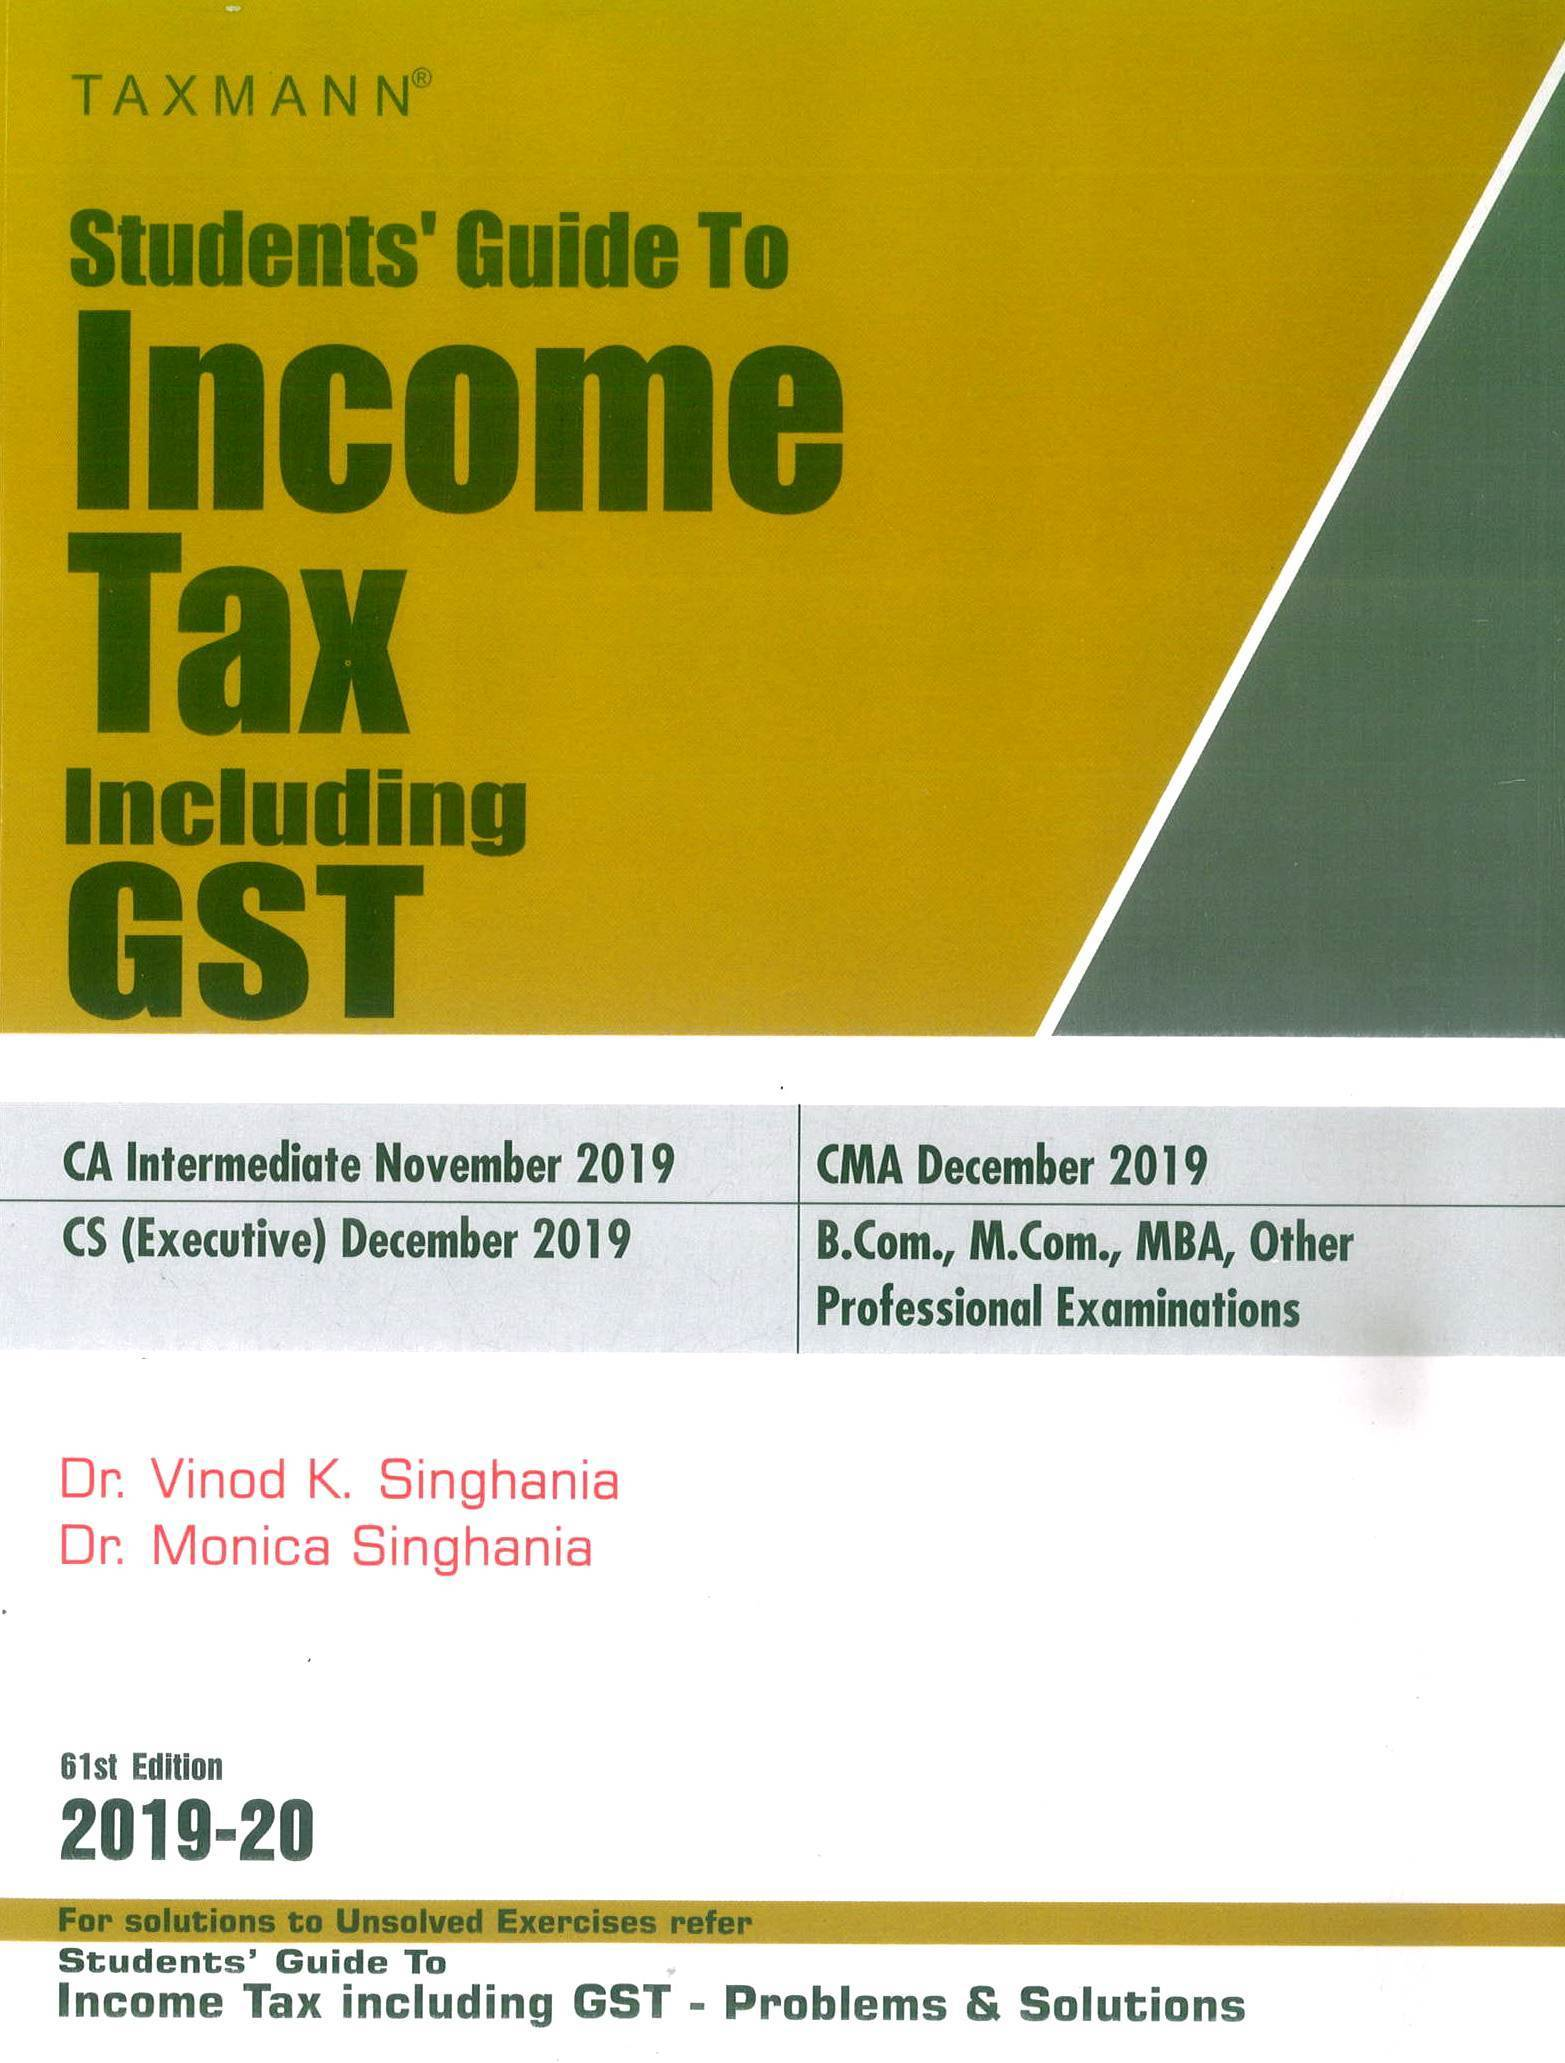 Taxmann Students Guide To Income Tax including GST Old and New Syllabus both By Monica Singhania Vinod K Singhania Applicable for November 2019 Exam